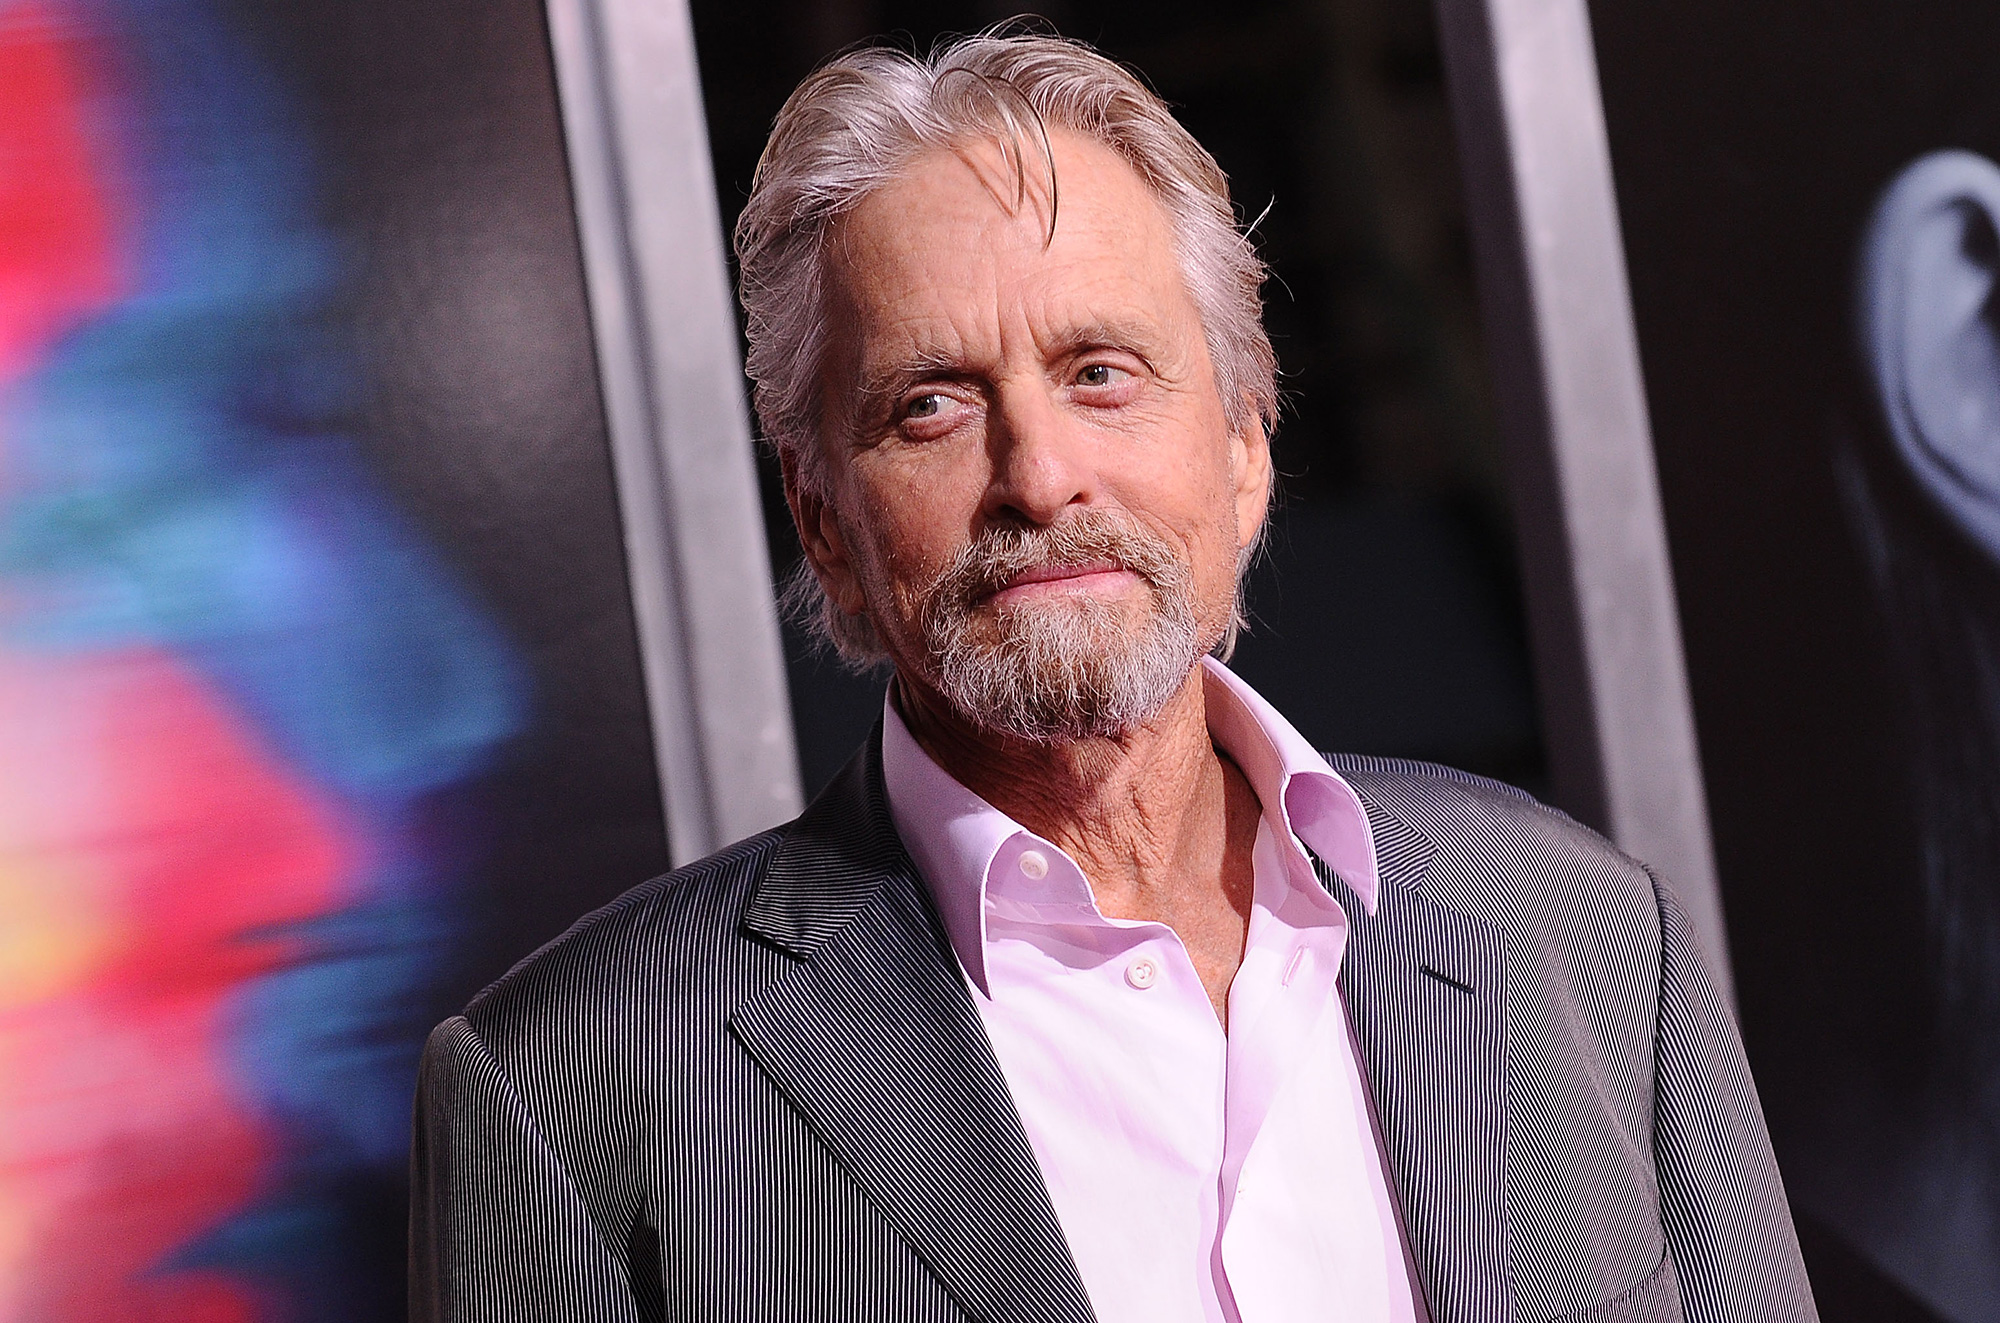 After a Pre-emptive Interview, Michael Douglas Is Accused of Sexual Harassment